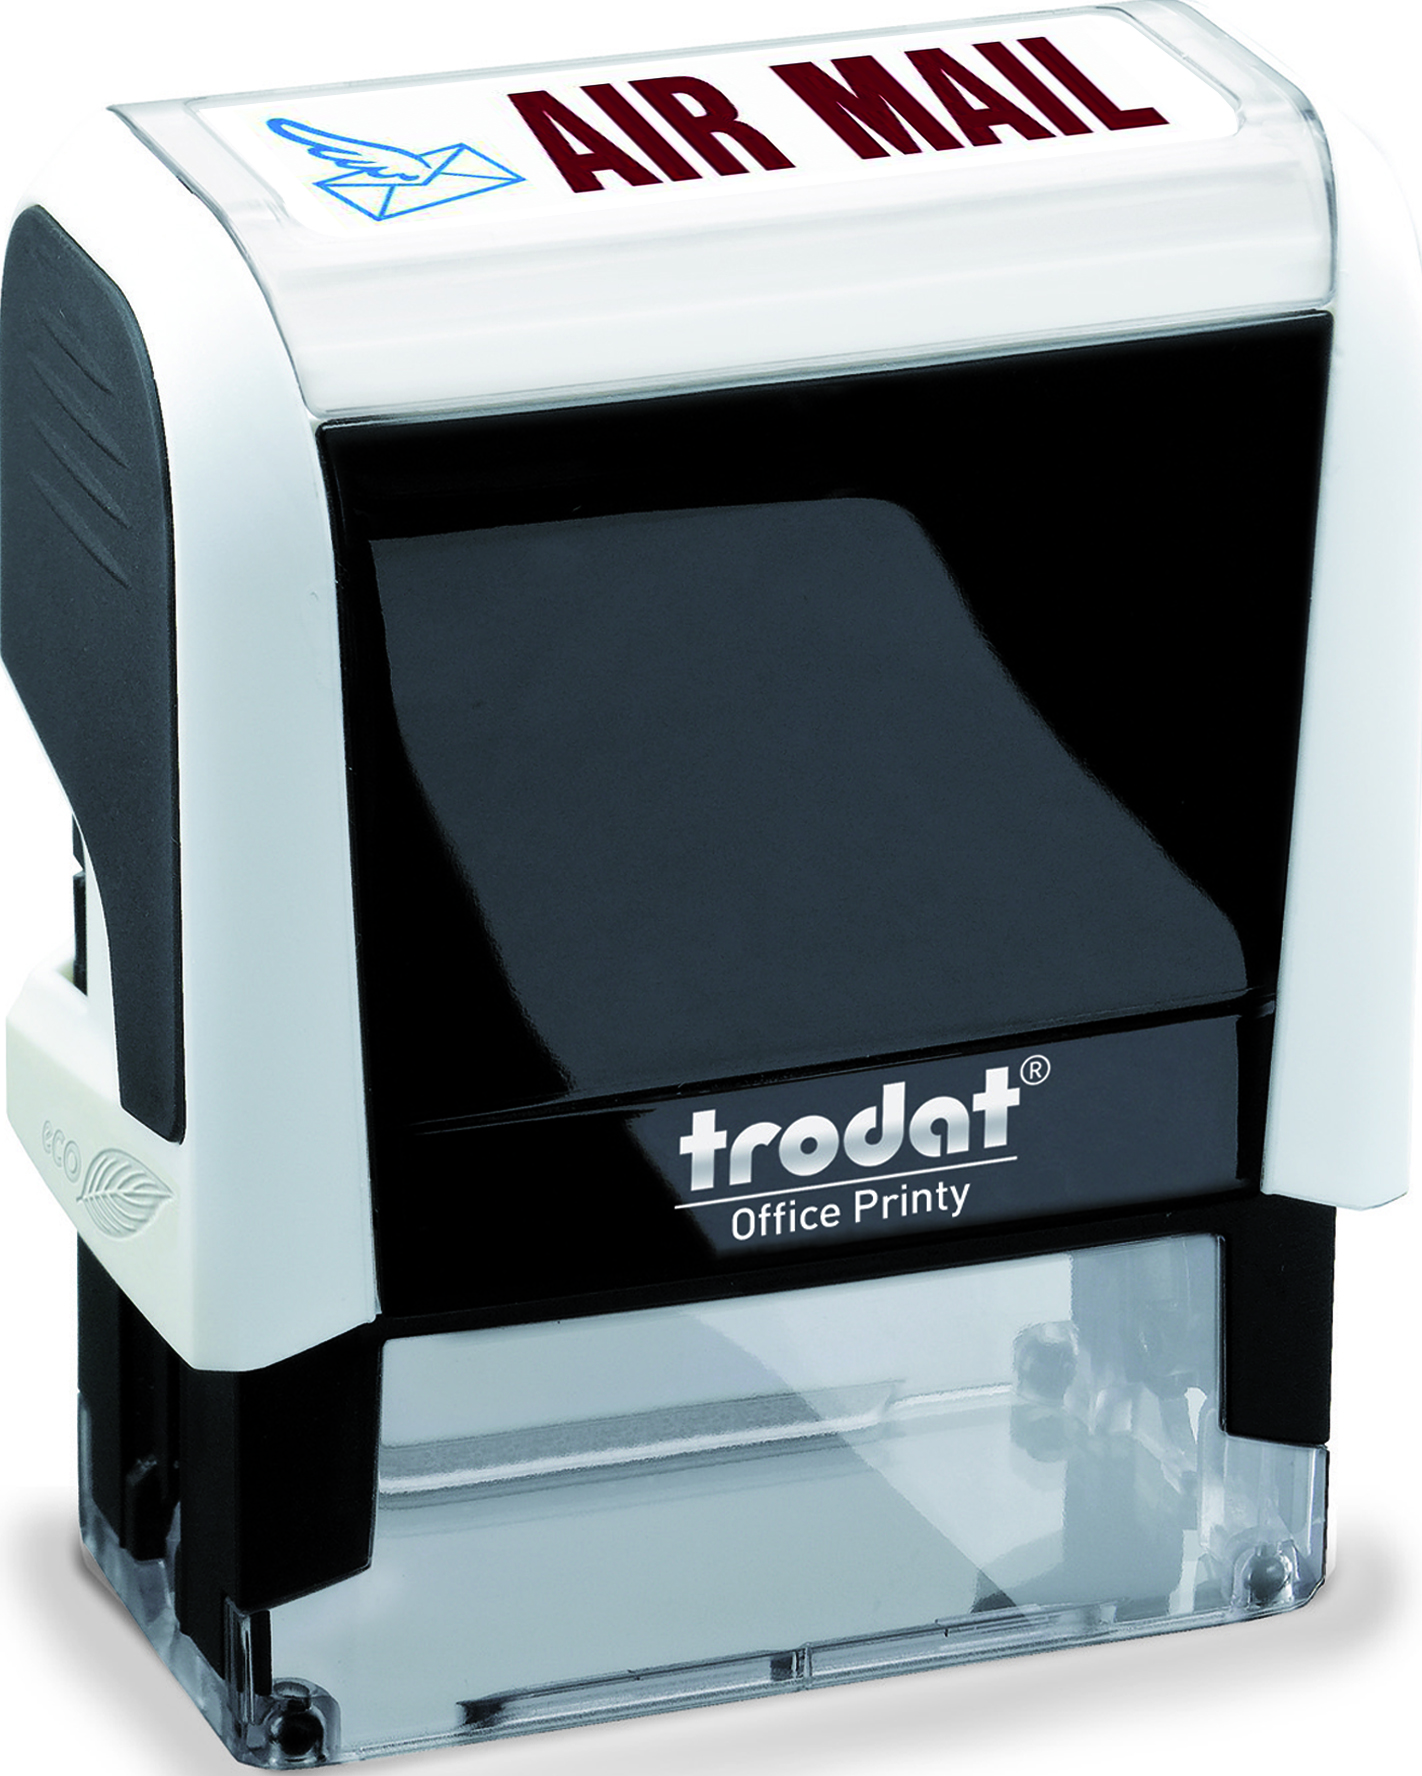 Trodat Office Printy 4912 White AIRMAIL